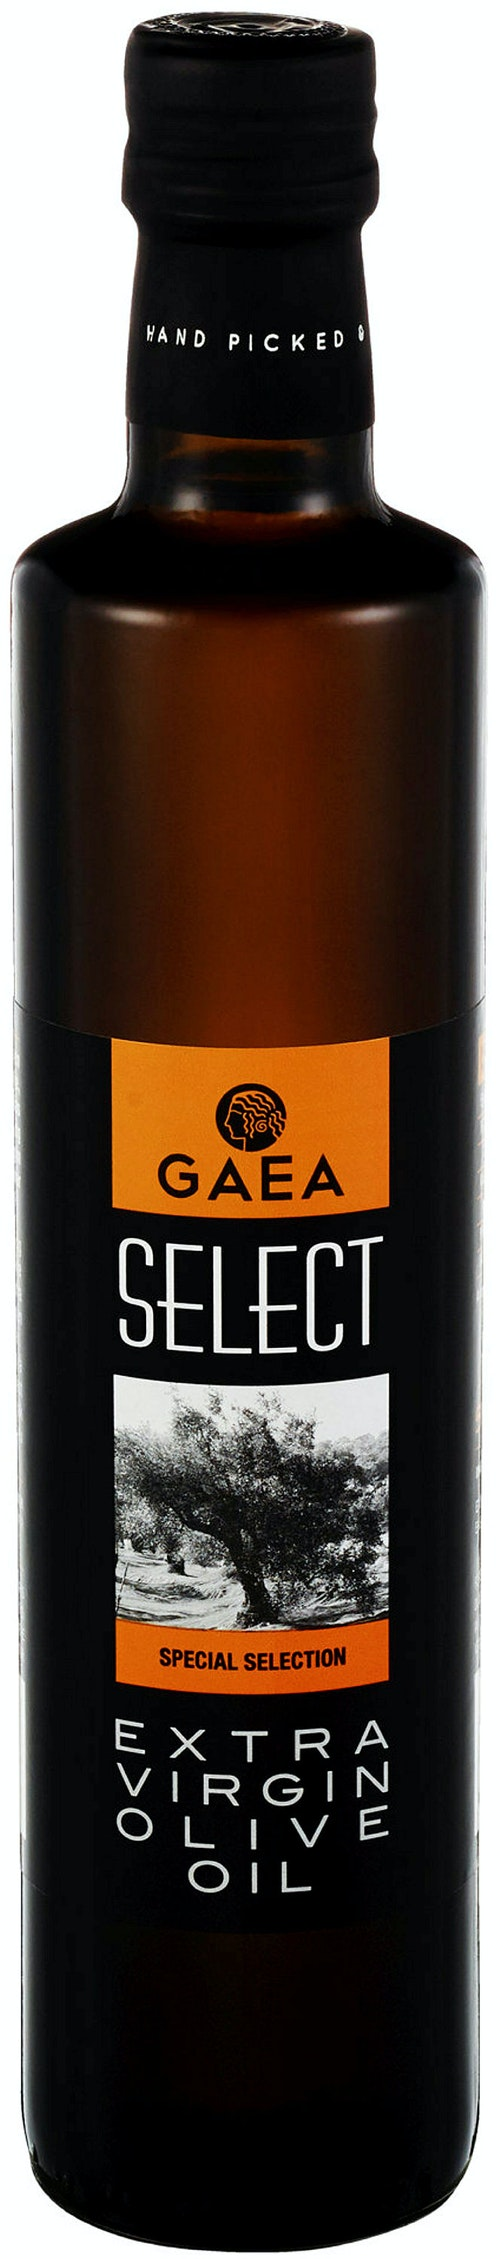 Gaea Select Extra Virgin Olive Oil 500 ml